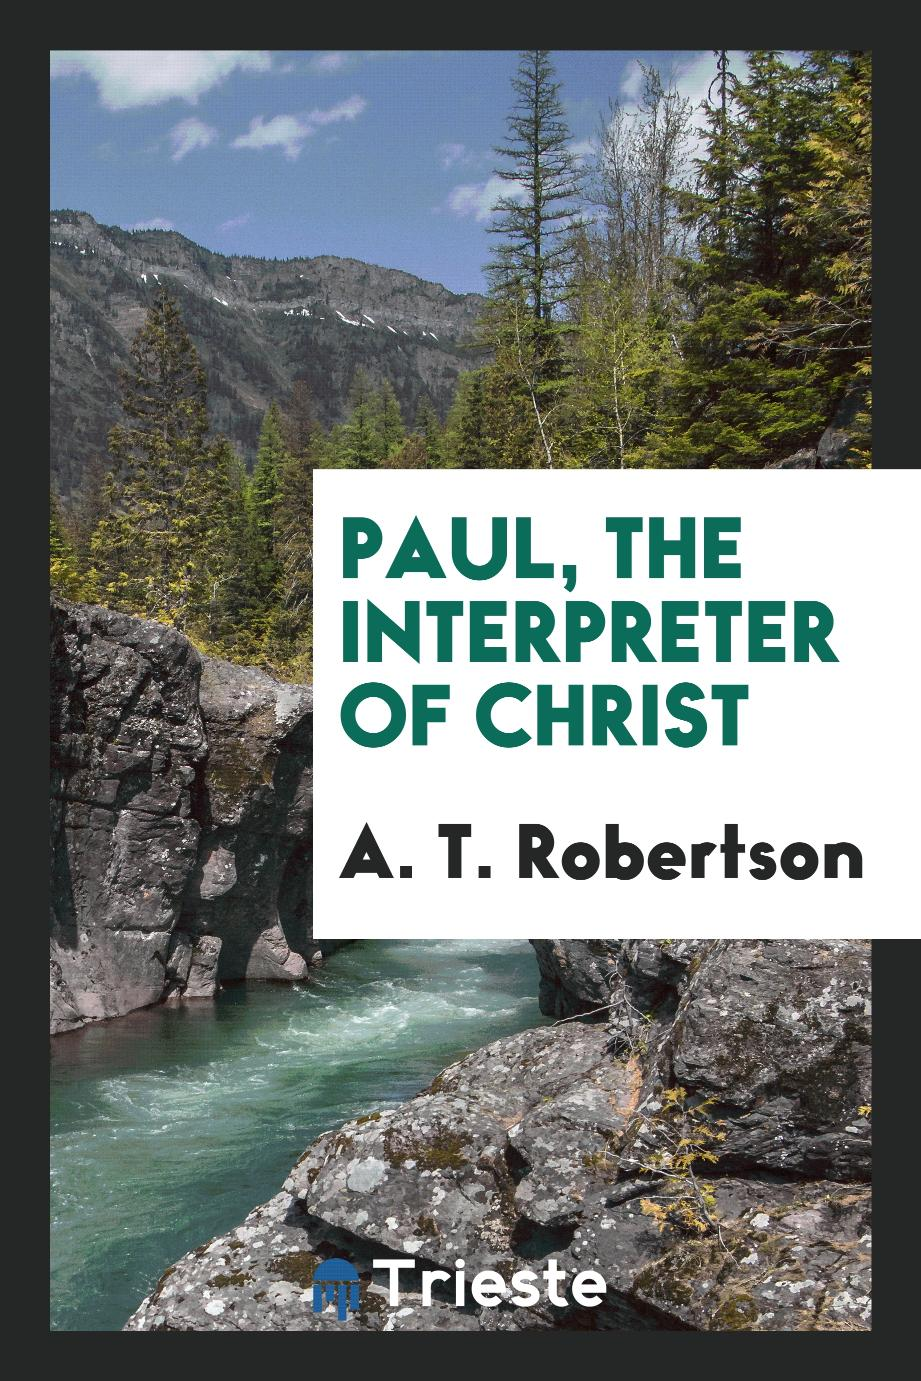 Paul, the Interpreter of Christ